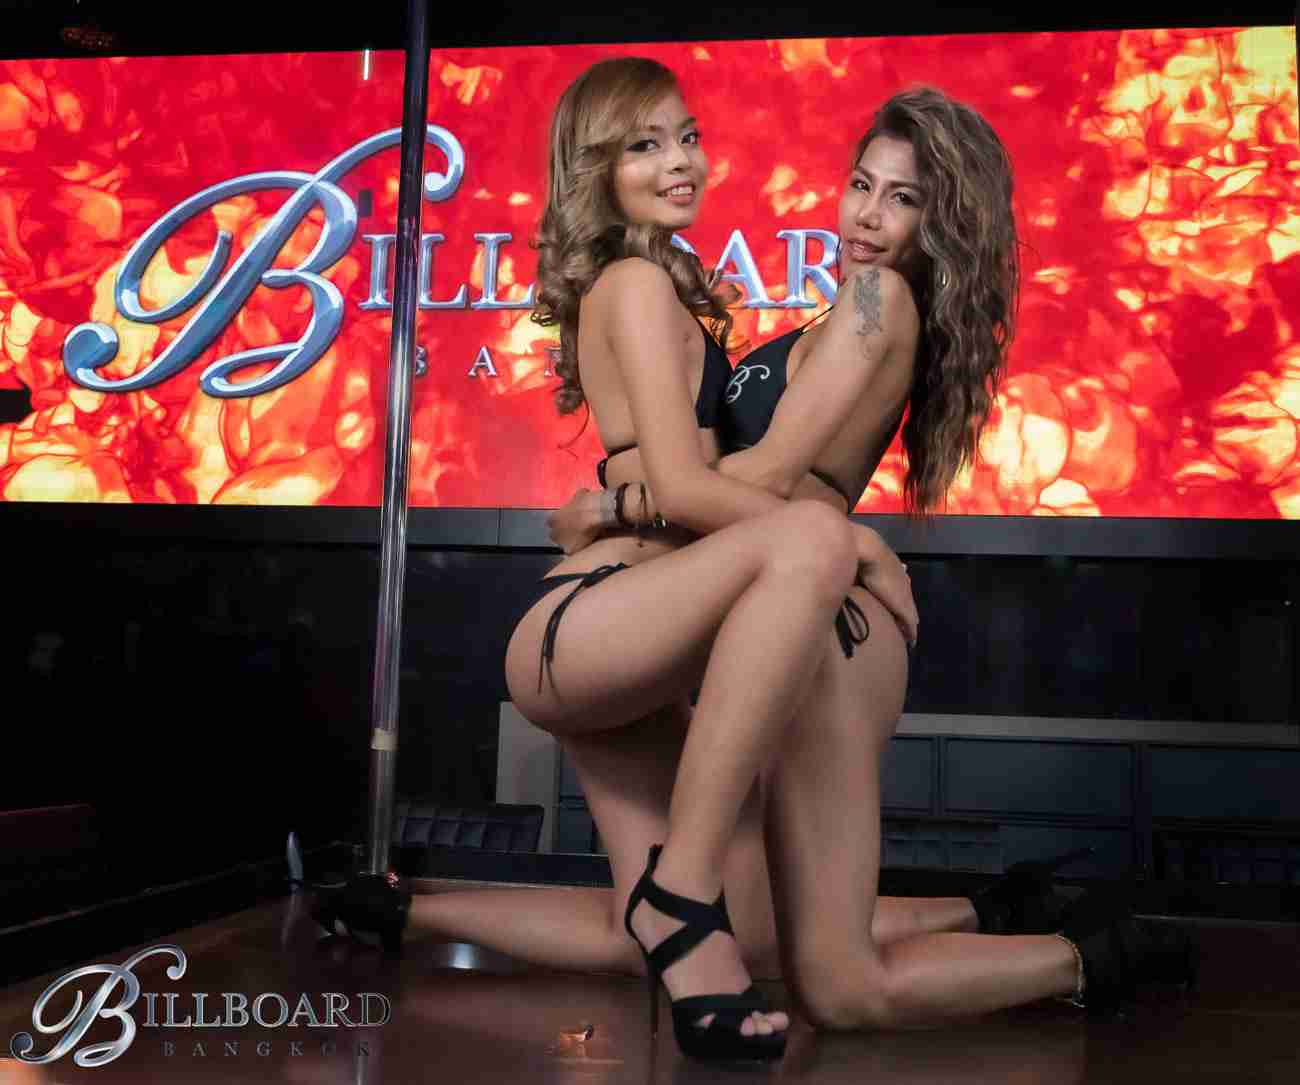 The Billboard Bangkok Babes pose in front of the Nana Plaza Thailand go-go bar's giant LED screen.